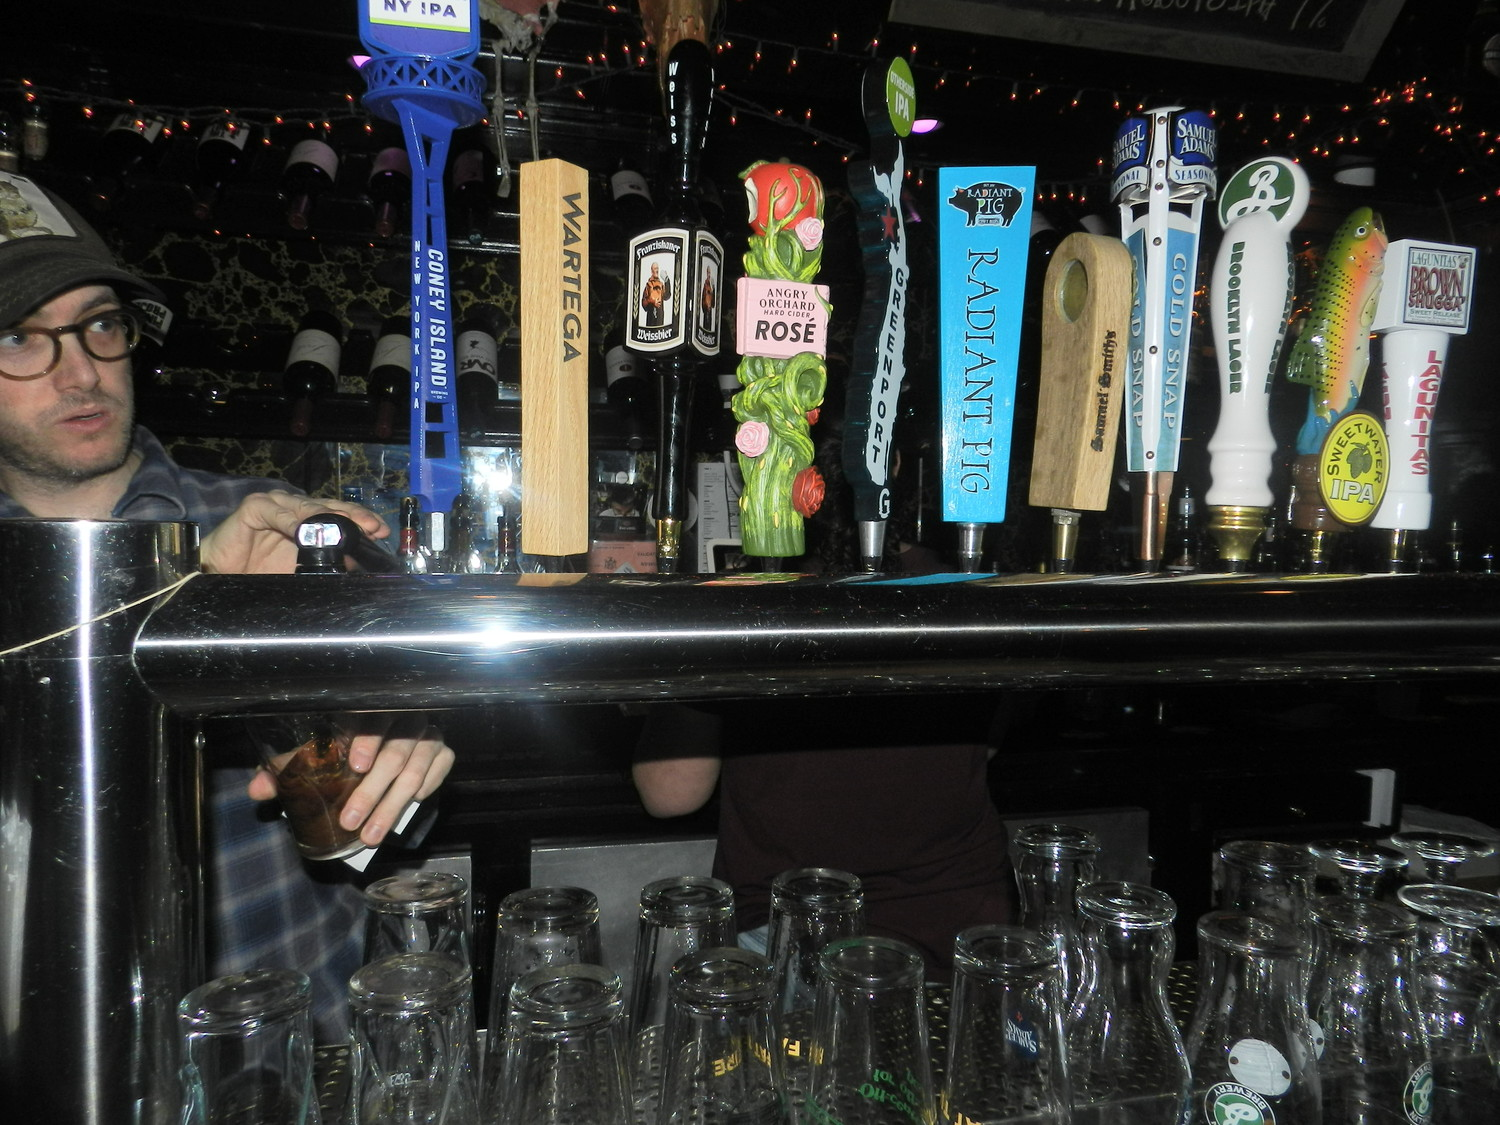 Still Partners had plenty of brew to choose from at 'Crawl for a Cause' on Friday.